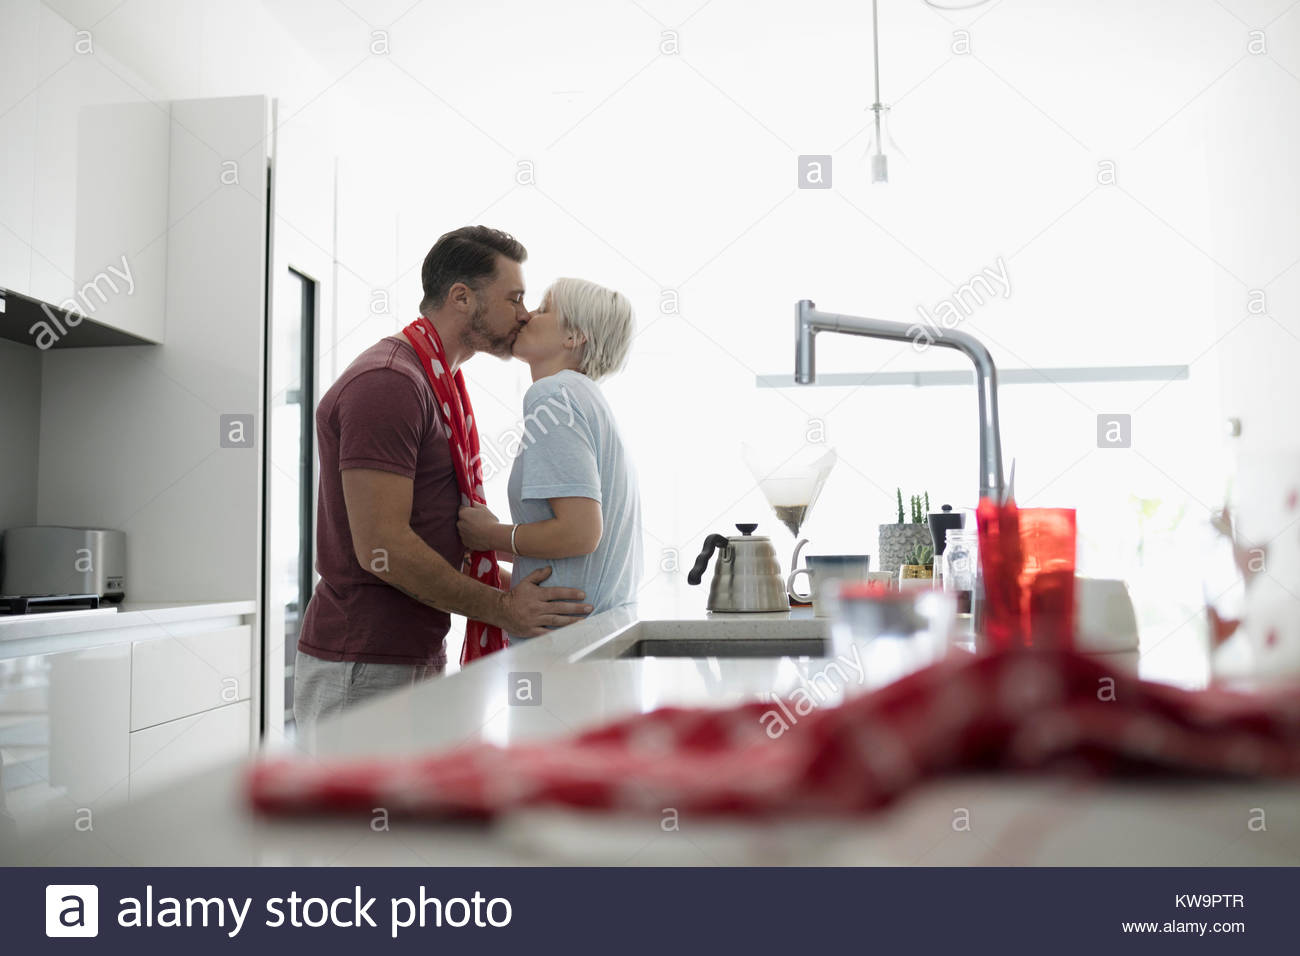 Affectionate,romantic couple kissing in morning kitchen - Stock Image